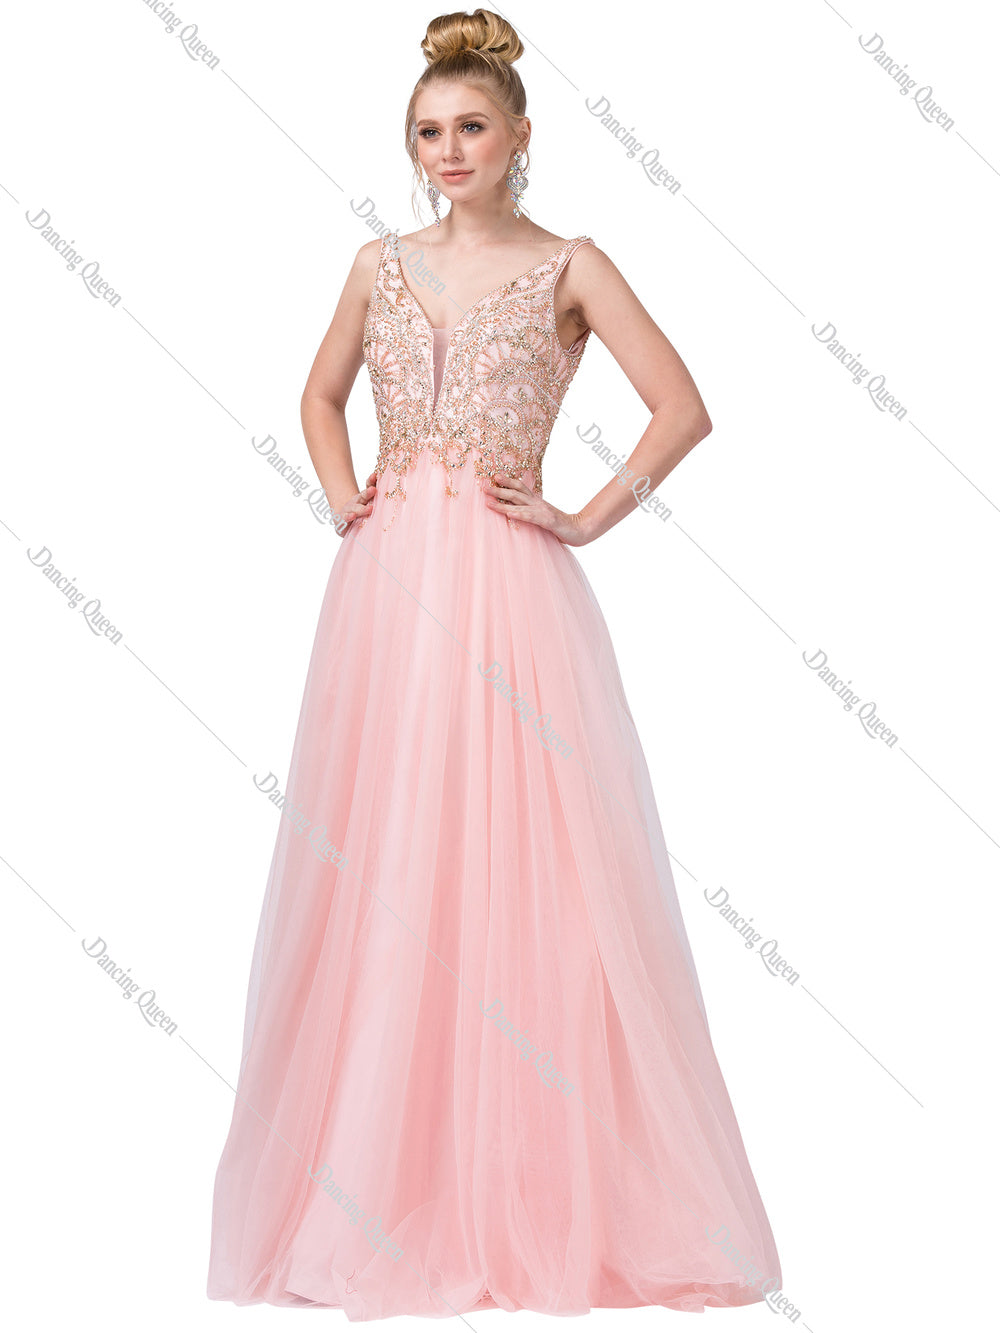 49785811e215 Dancing Queen DQ 2514 - Tulle Ball Gown with Bead Embellished Plunging Back  Bodice - Diggz